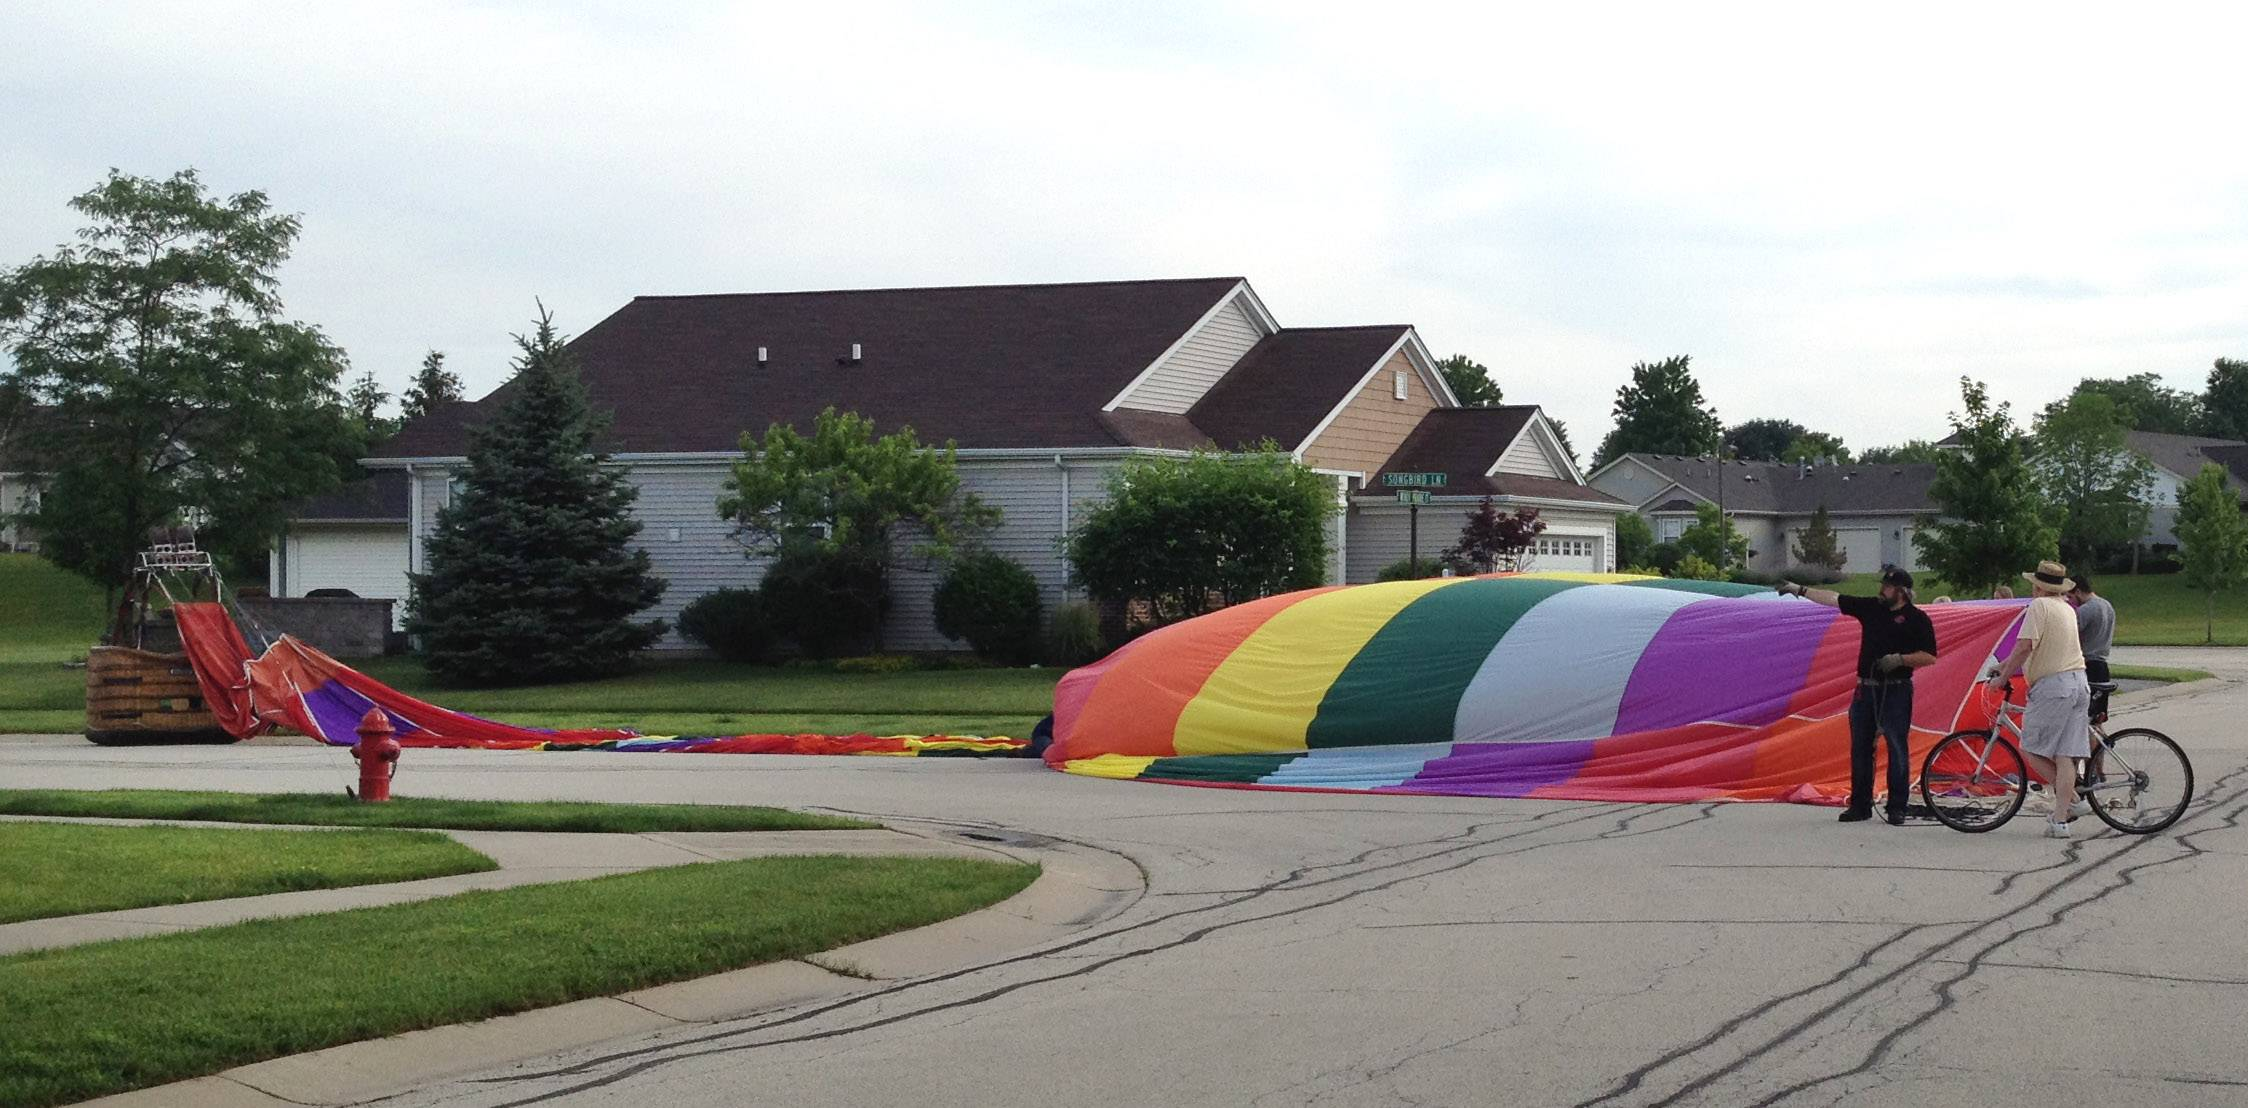 Flight regulators say the hot-air balloon that made an emergency landing in the middle of an intersection in Huntley's Sun City neighborhood early Tuesday did not violate FAA flight rules.